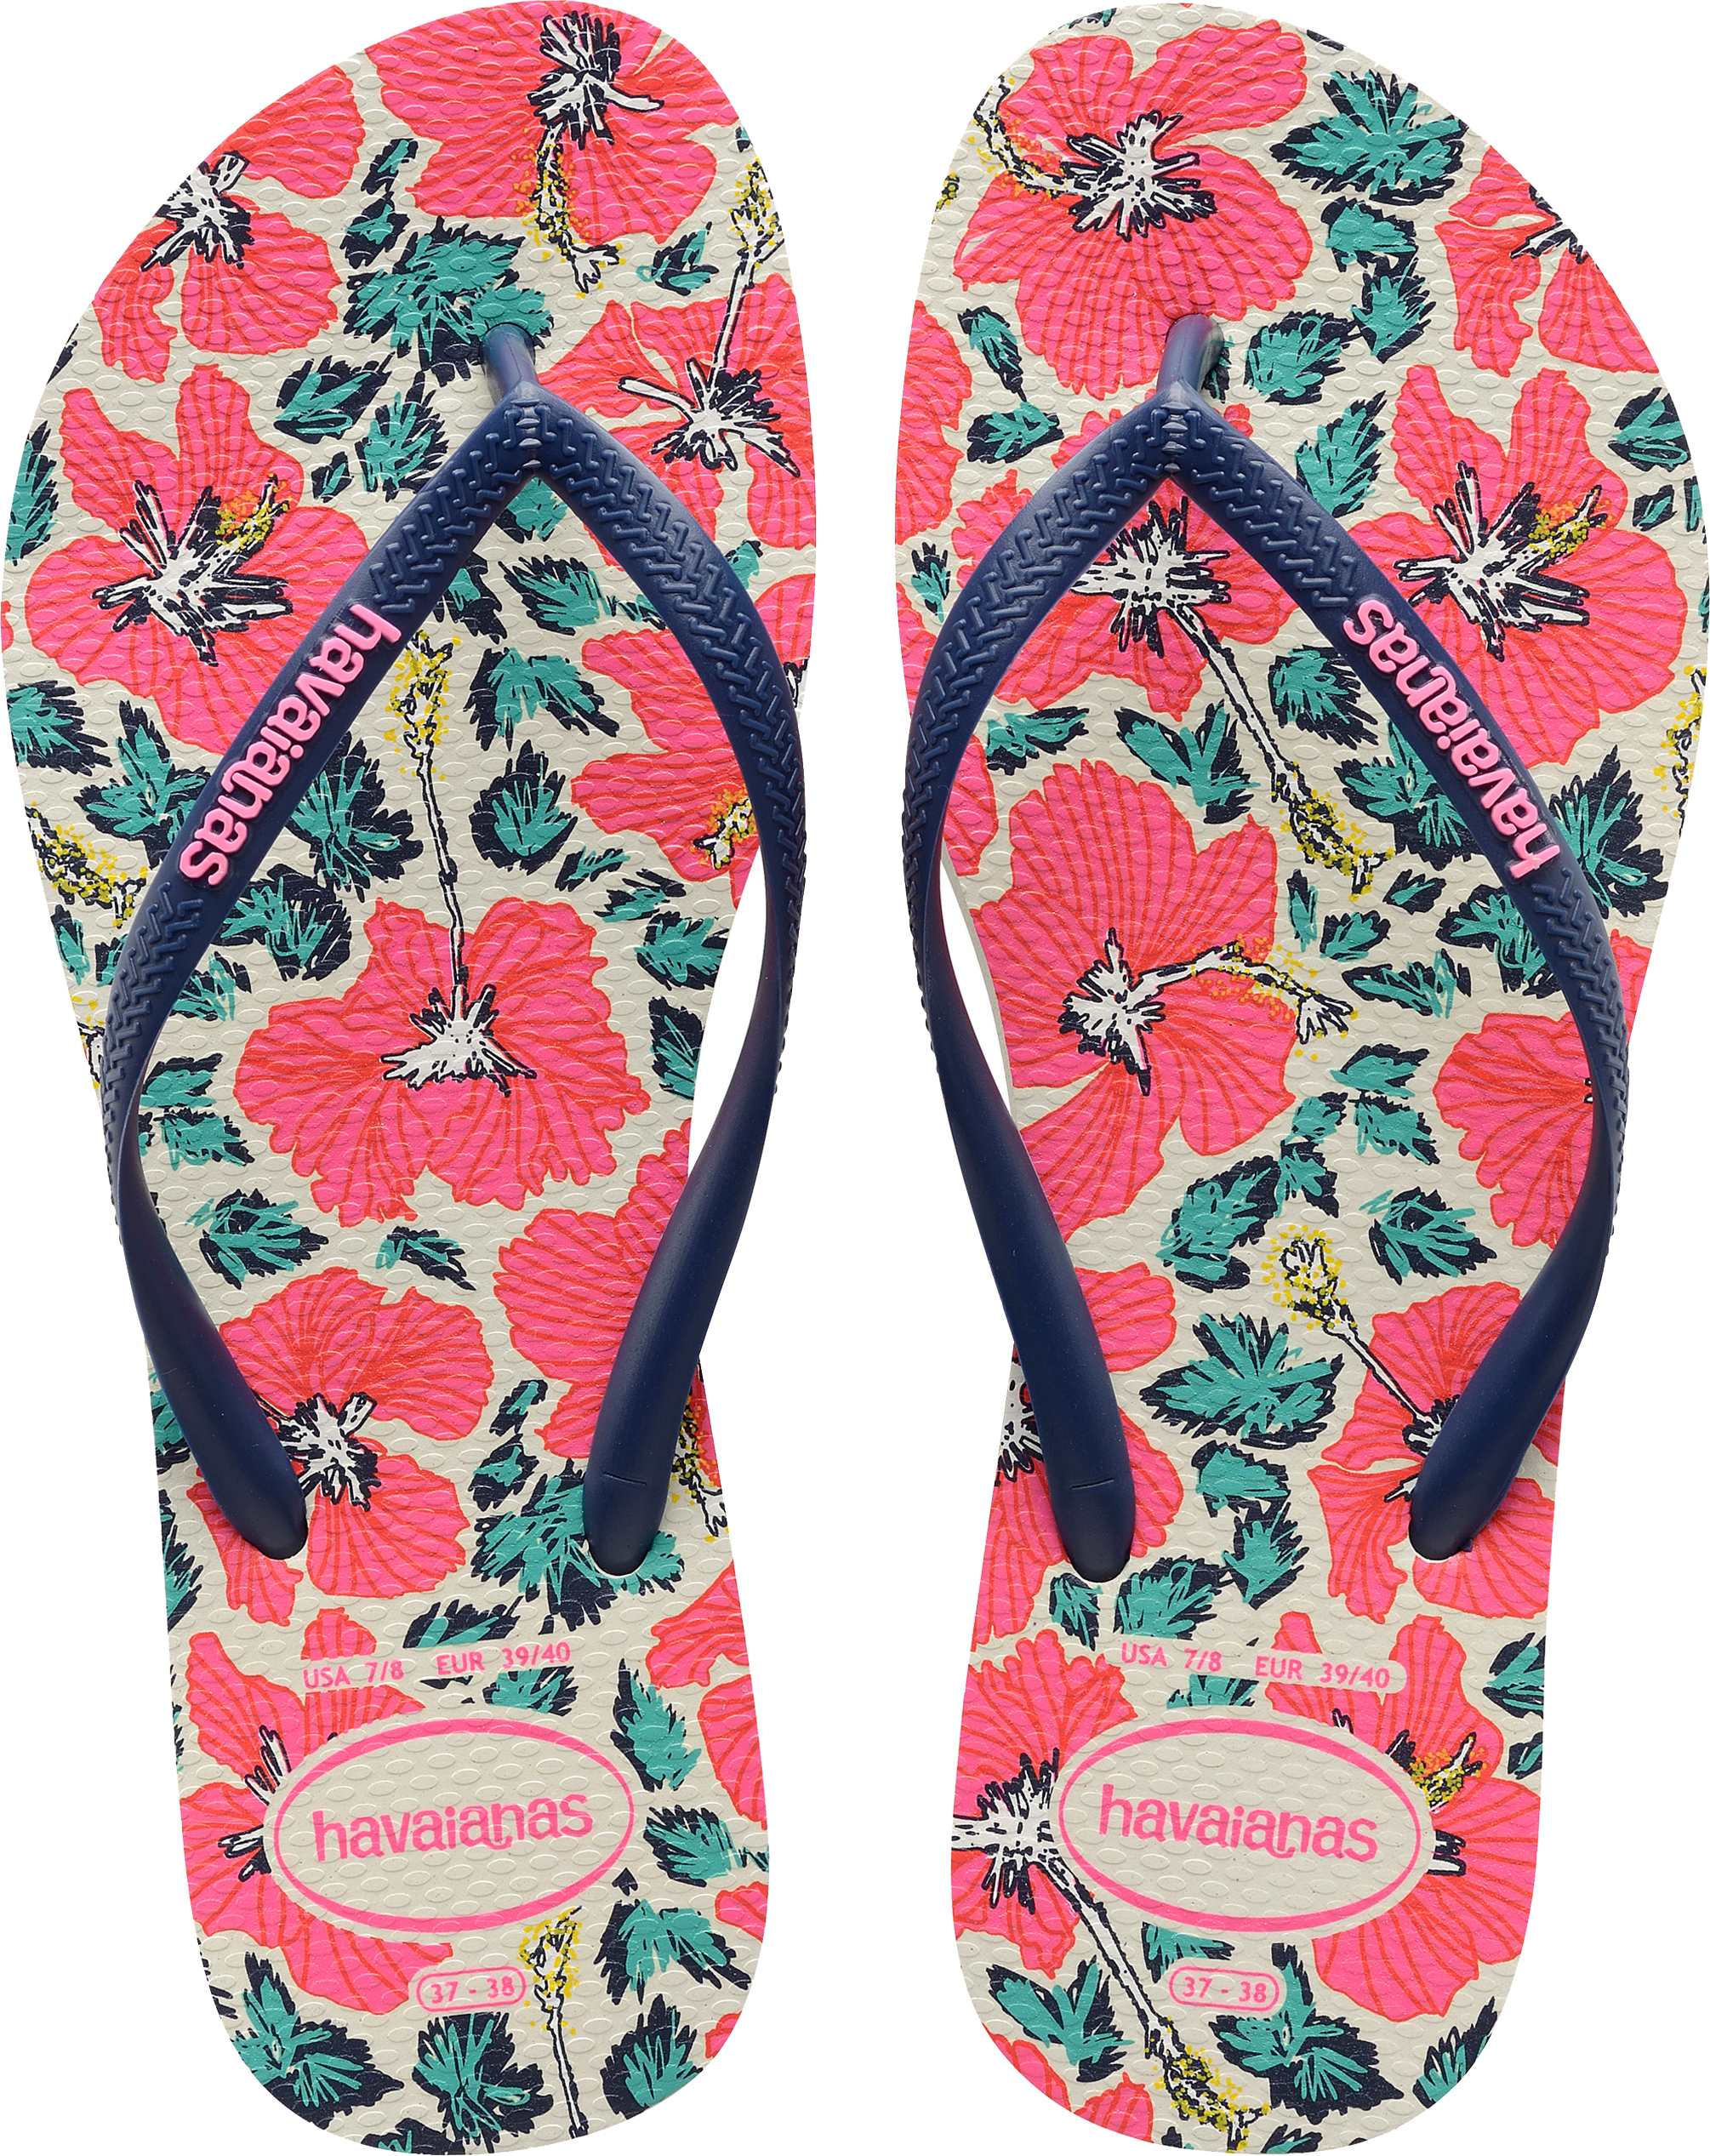 5740f3ac7 Havaianas Slim Floral Women s Flip Flops. Uk8 White navy Blue. About this  product. Picture 1 of 5  Picture 2 of 5 ...